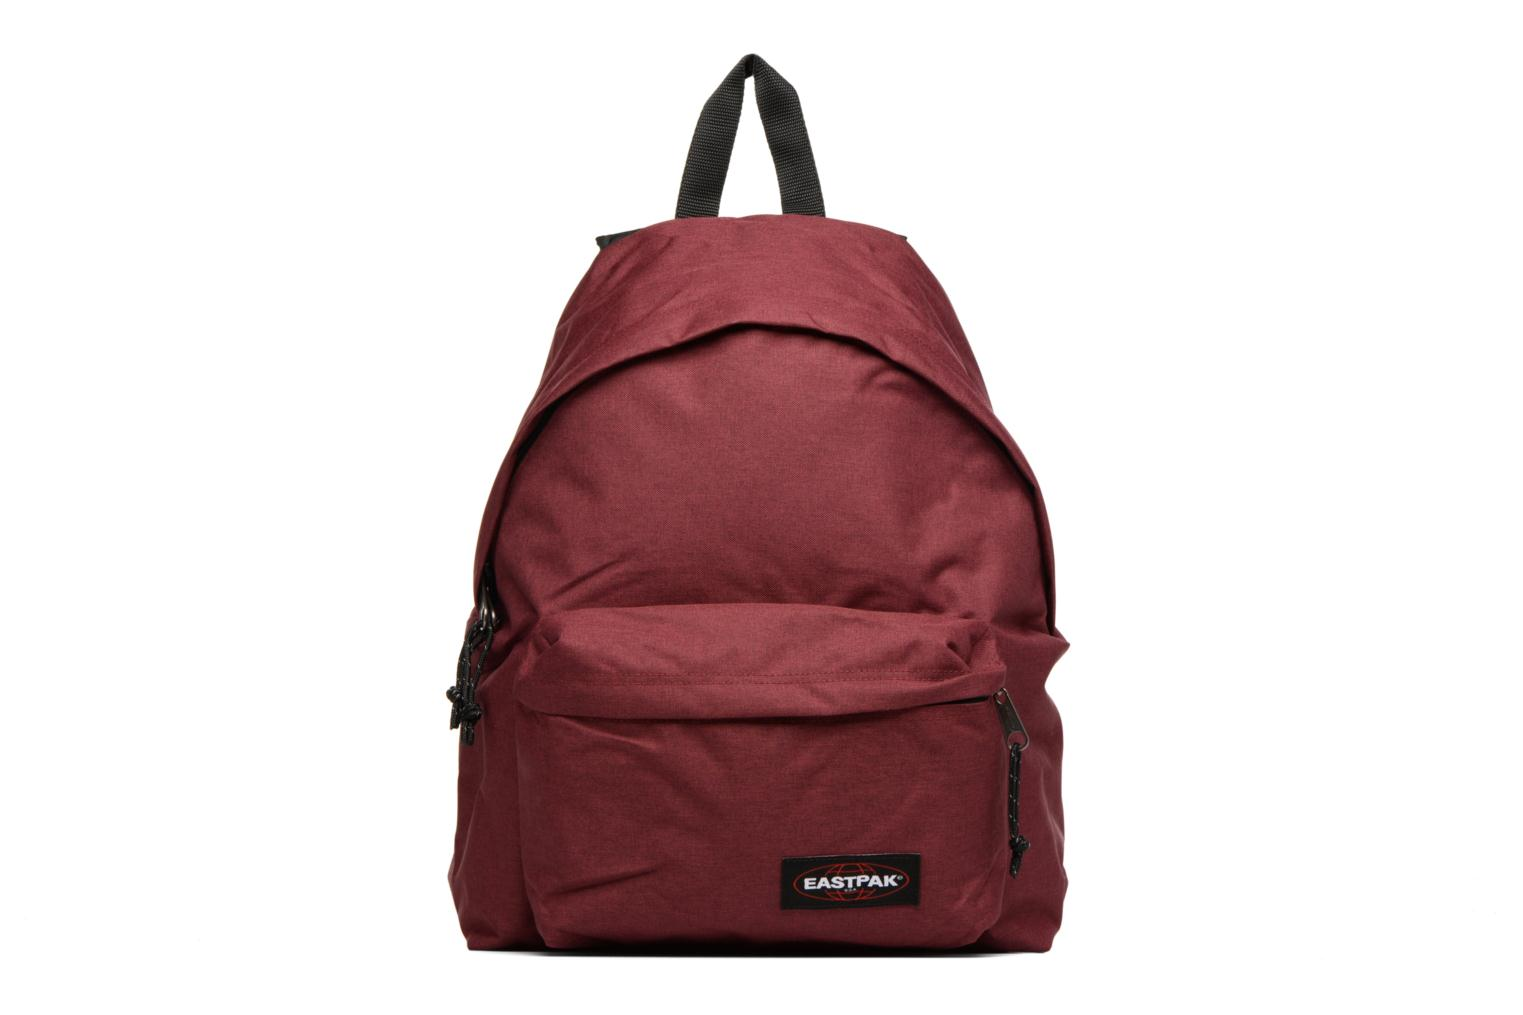 Rugzakken Eastpak PADDED PACK'R Sac à dos toile Bordeaux detail